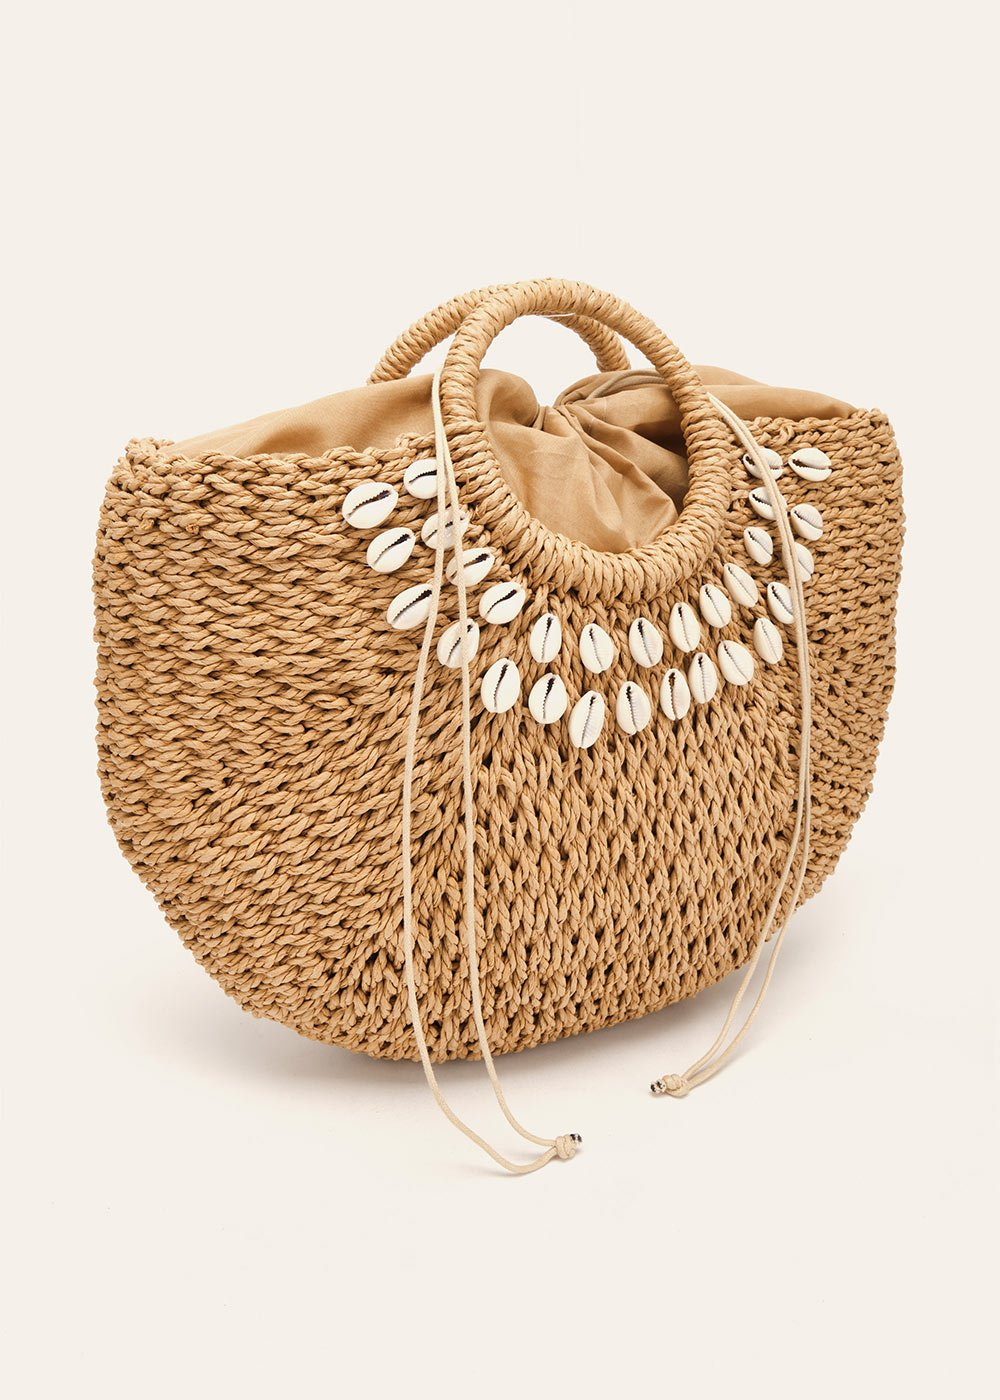 Betzie shopping bag with shells - Camel - Woman